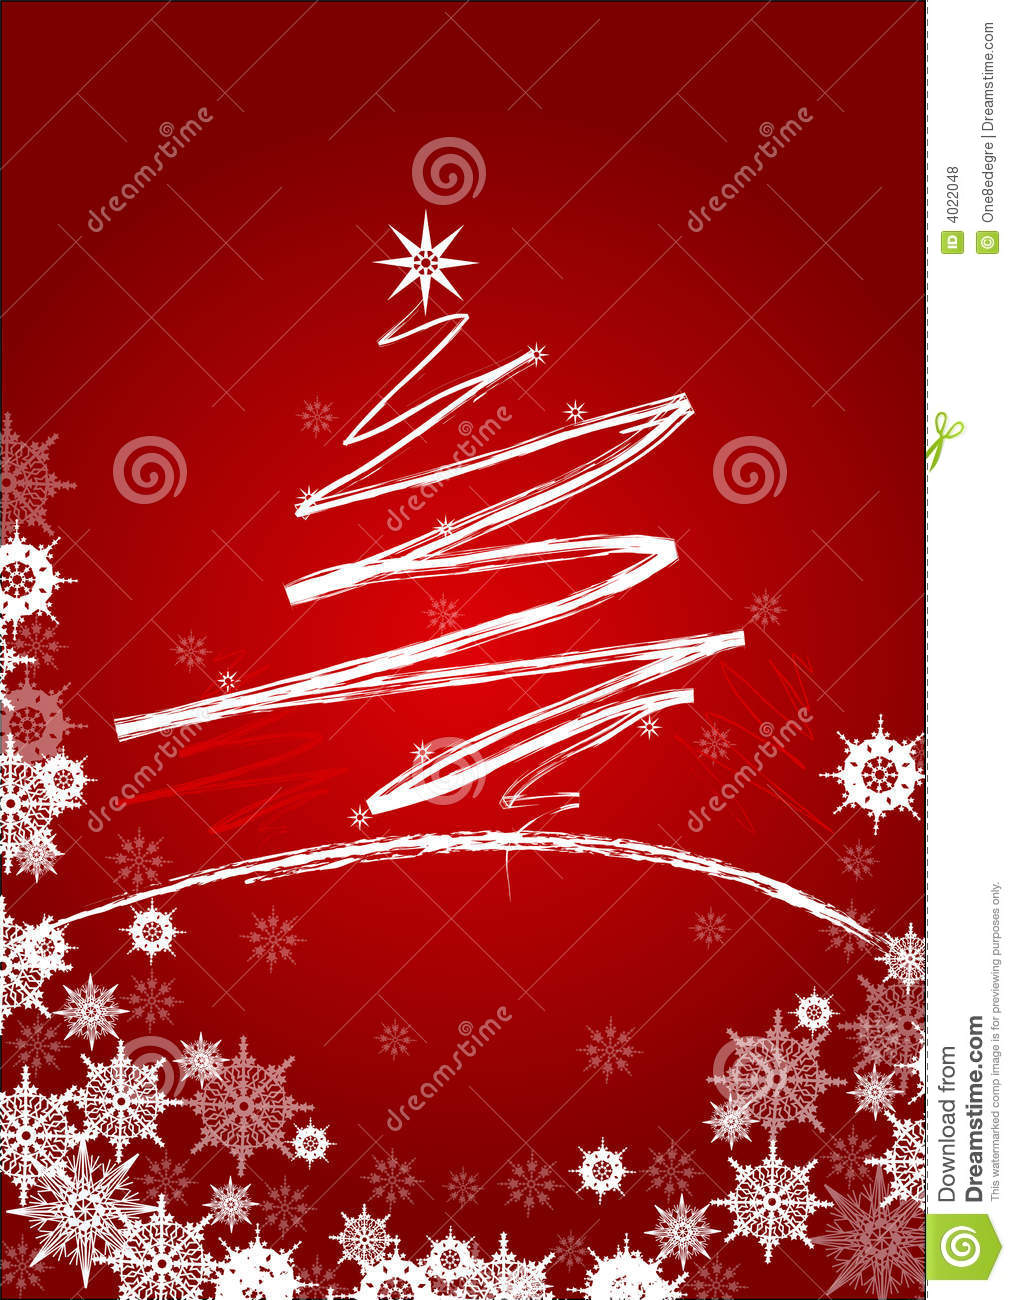 Seasons Greetings Royalty Free Stock Photos Image 4022048